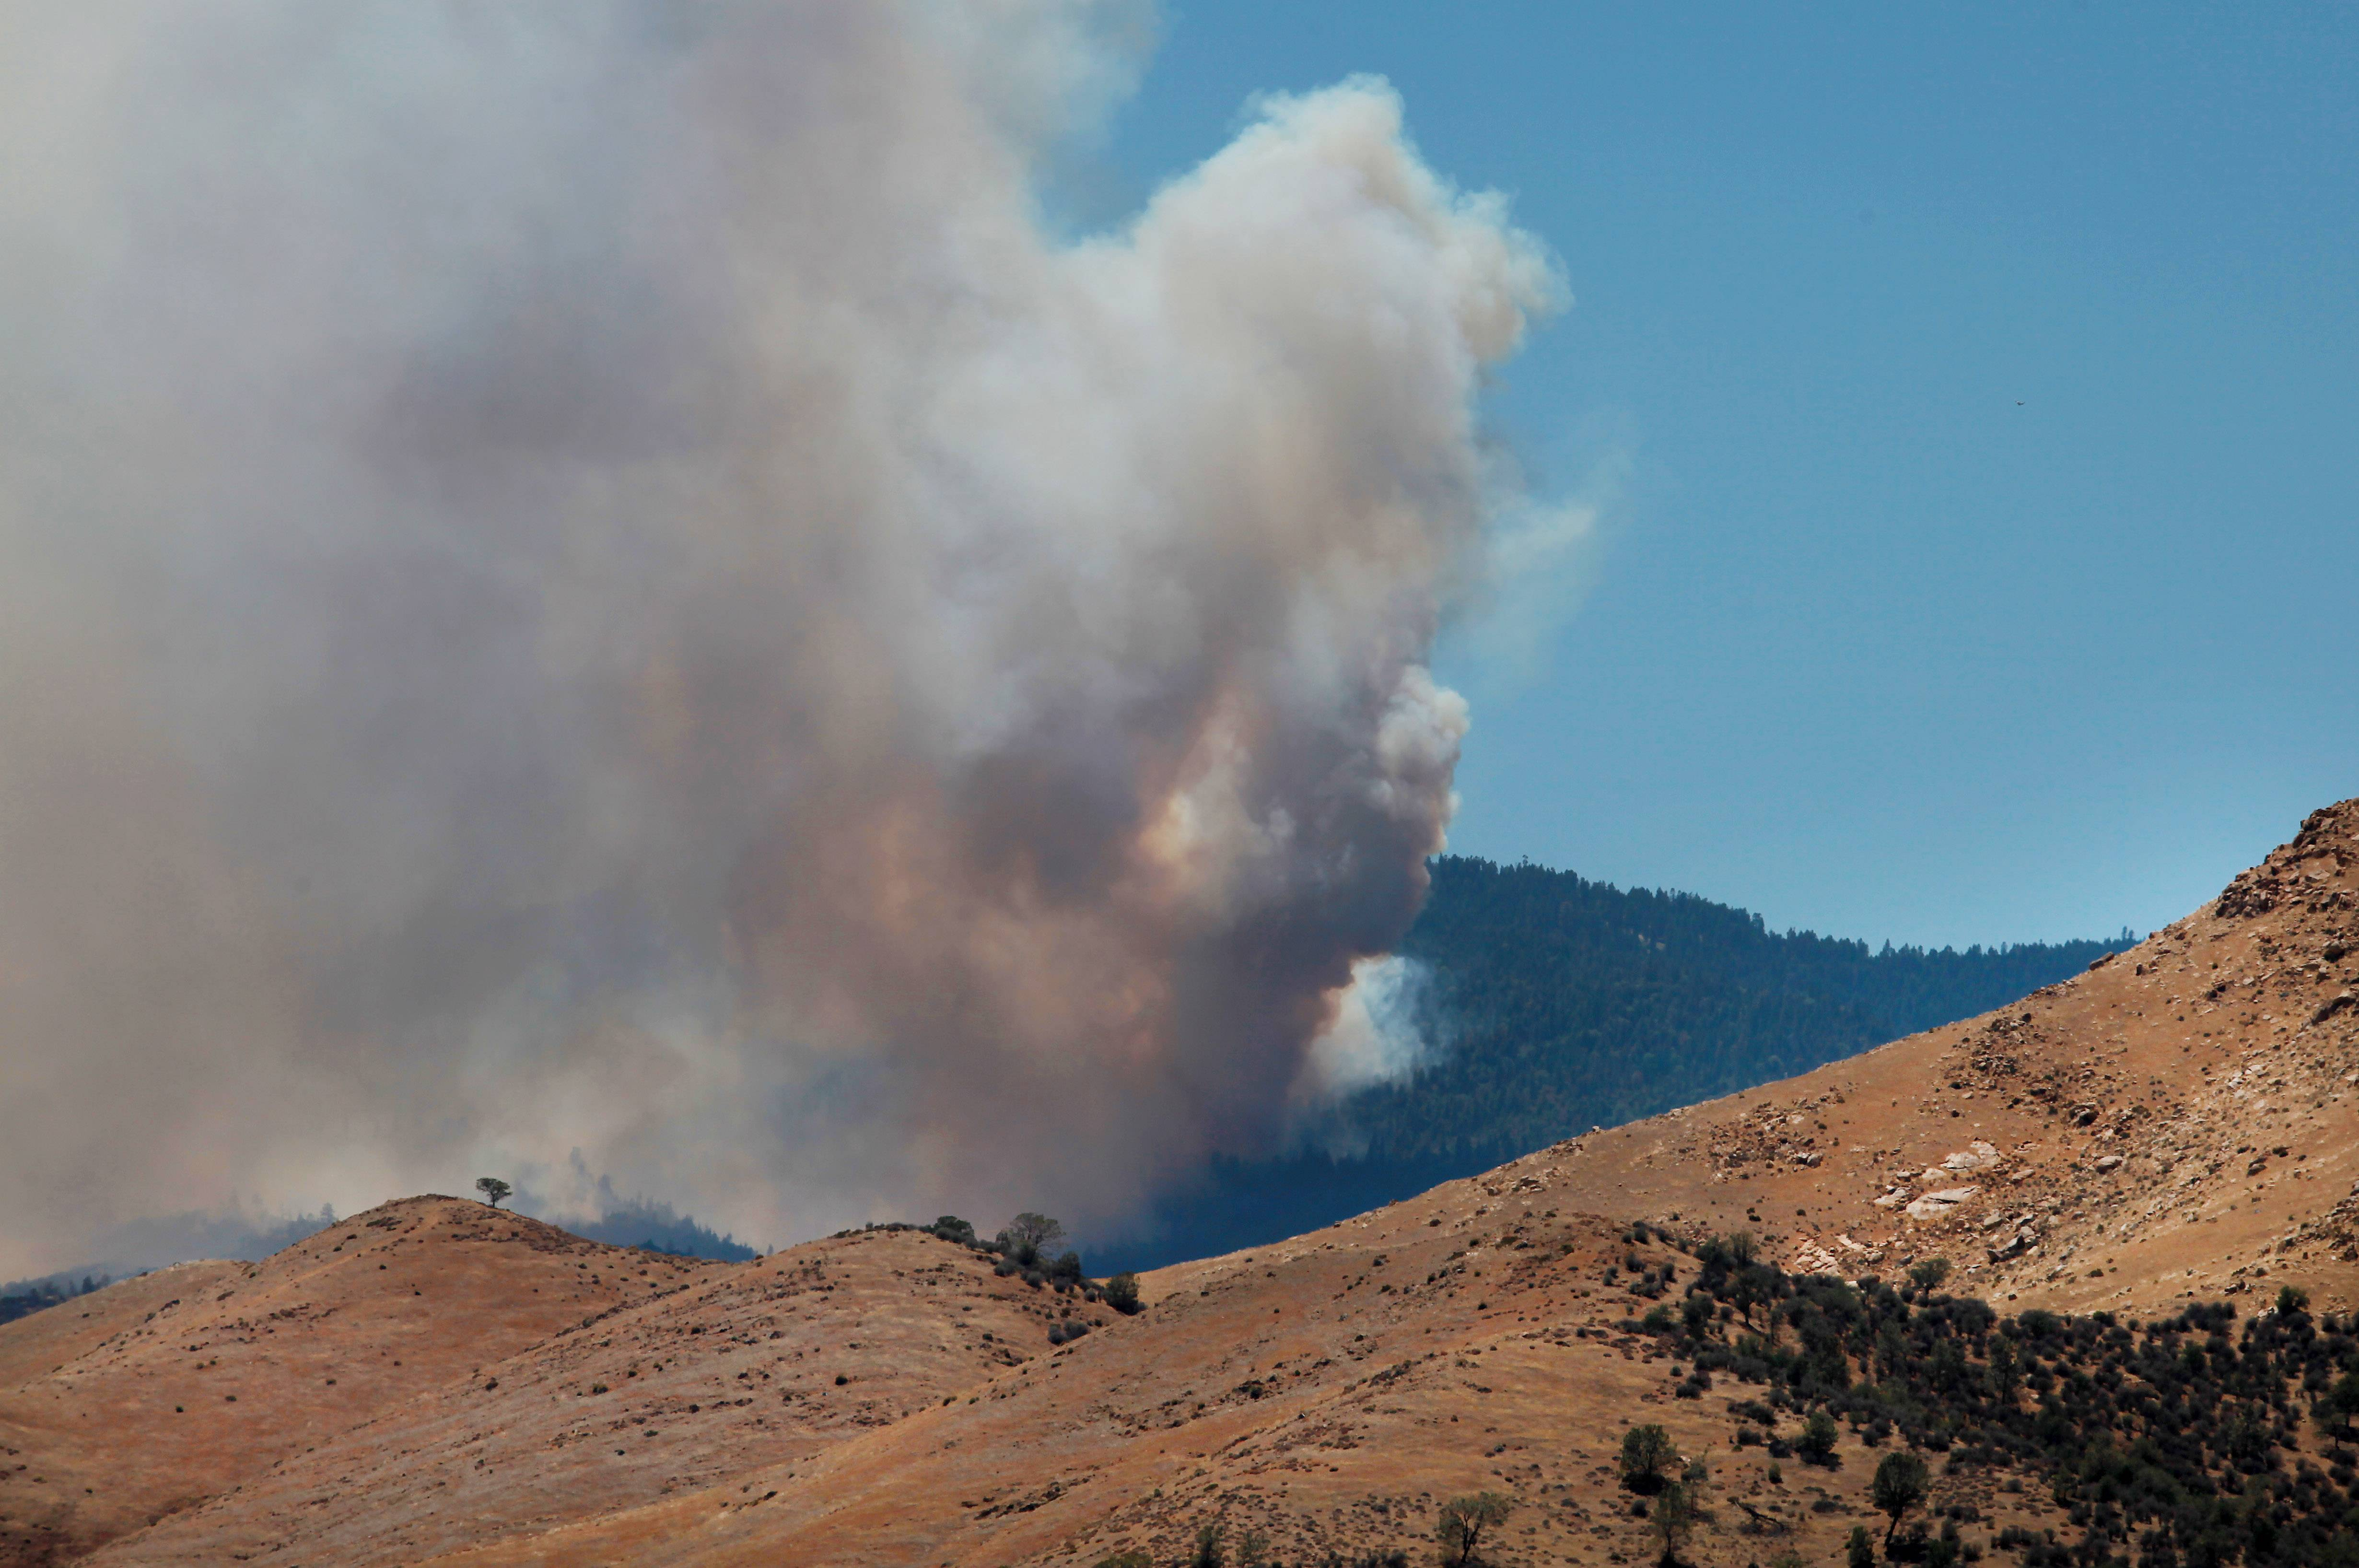 Heavy smoke from the Shirley Fire above Wofford Heights, Calif., is seen Sunday. The Forest Service reported Sunday morning that the amount of acreage charred by the fire burning about 30 miles northeast of Bakersfield more than doubled overnight to 2.8 square miles.